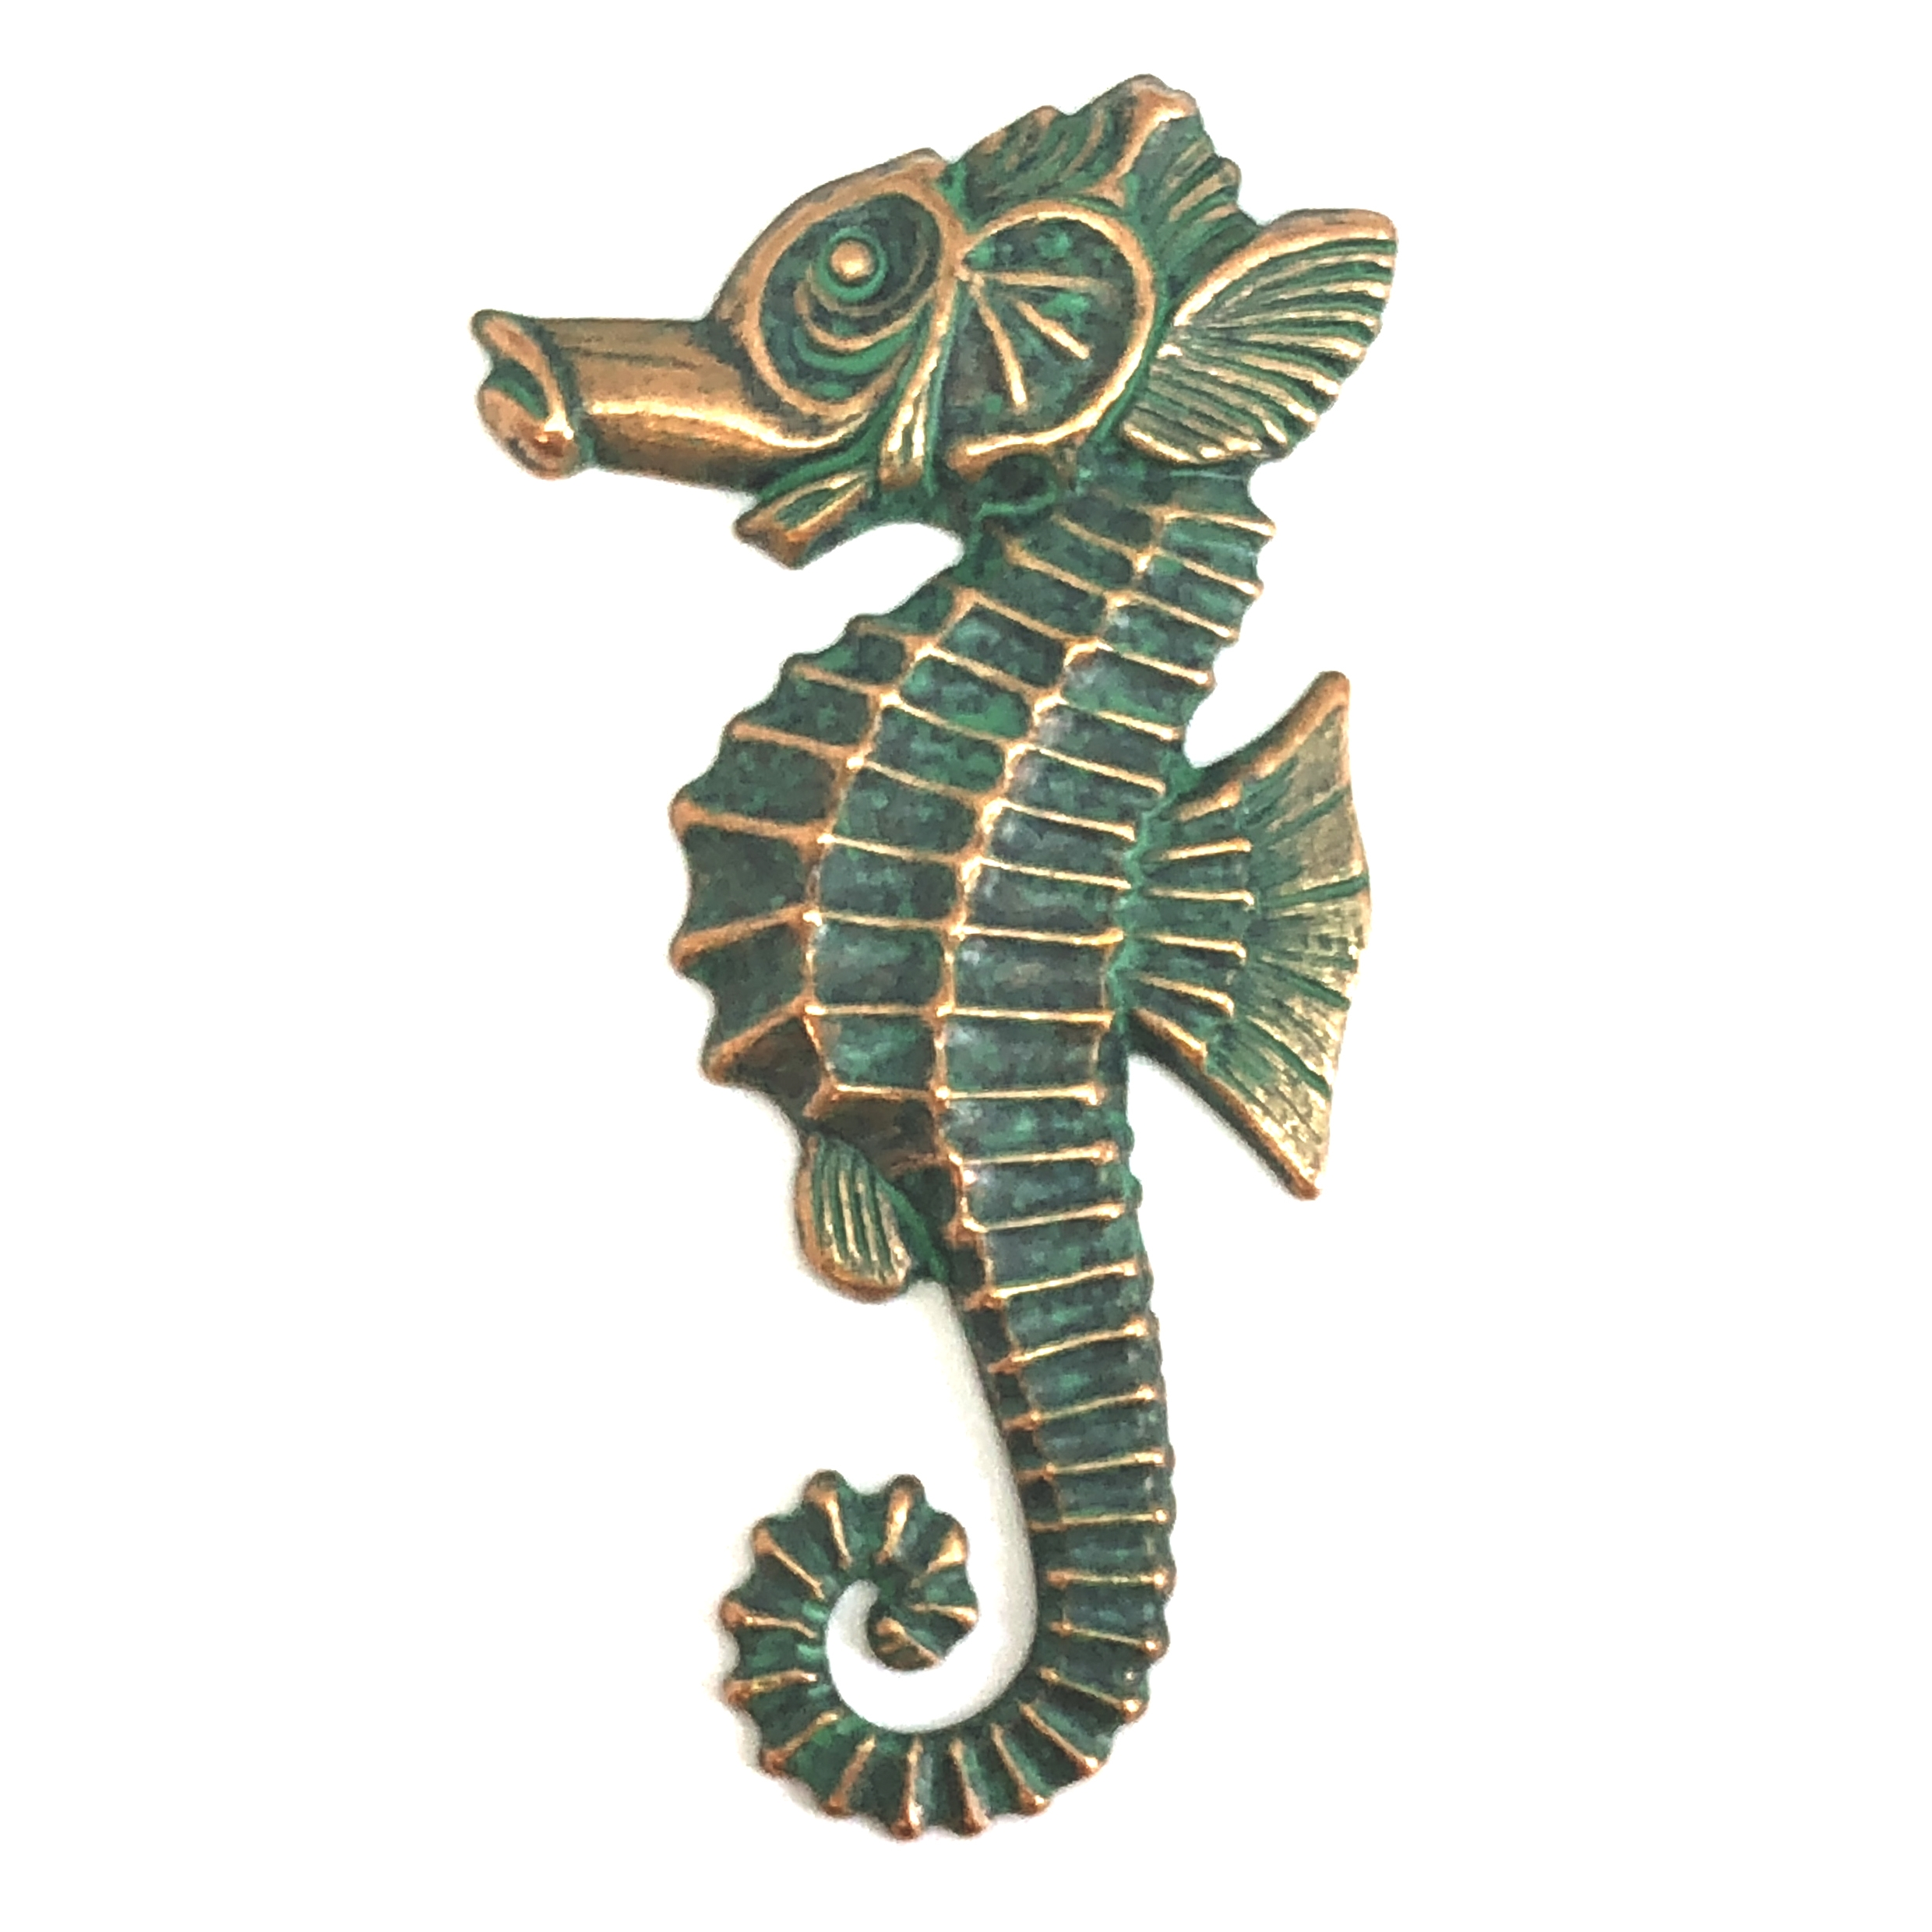 brass seahorse, beach jewelry,  jewelry making, 08177, B'sue Boutiques, nickel free, US Made, jewelry supplies, jewelry making, vintage jewelry supplies, brass jewelry parts, mold making jewelry, aqua copper patina, antique copper